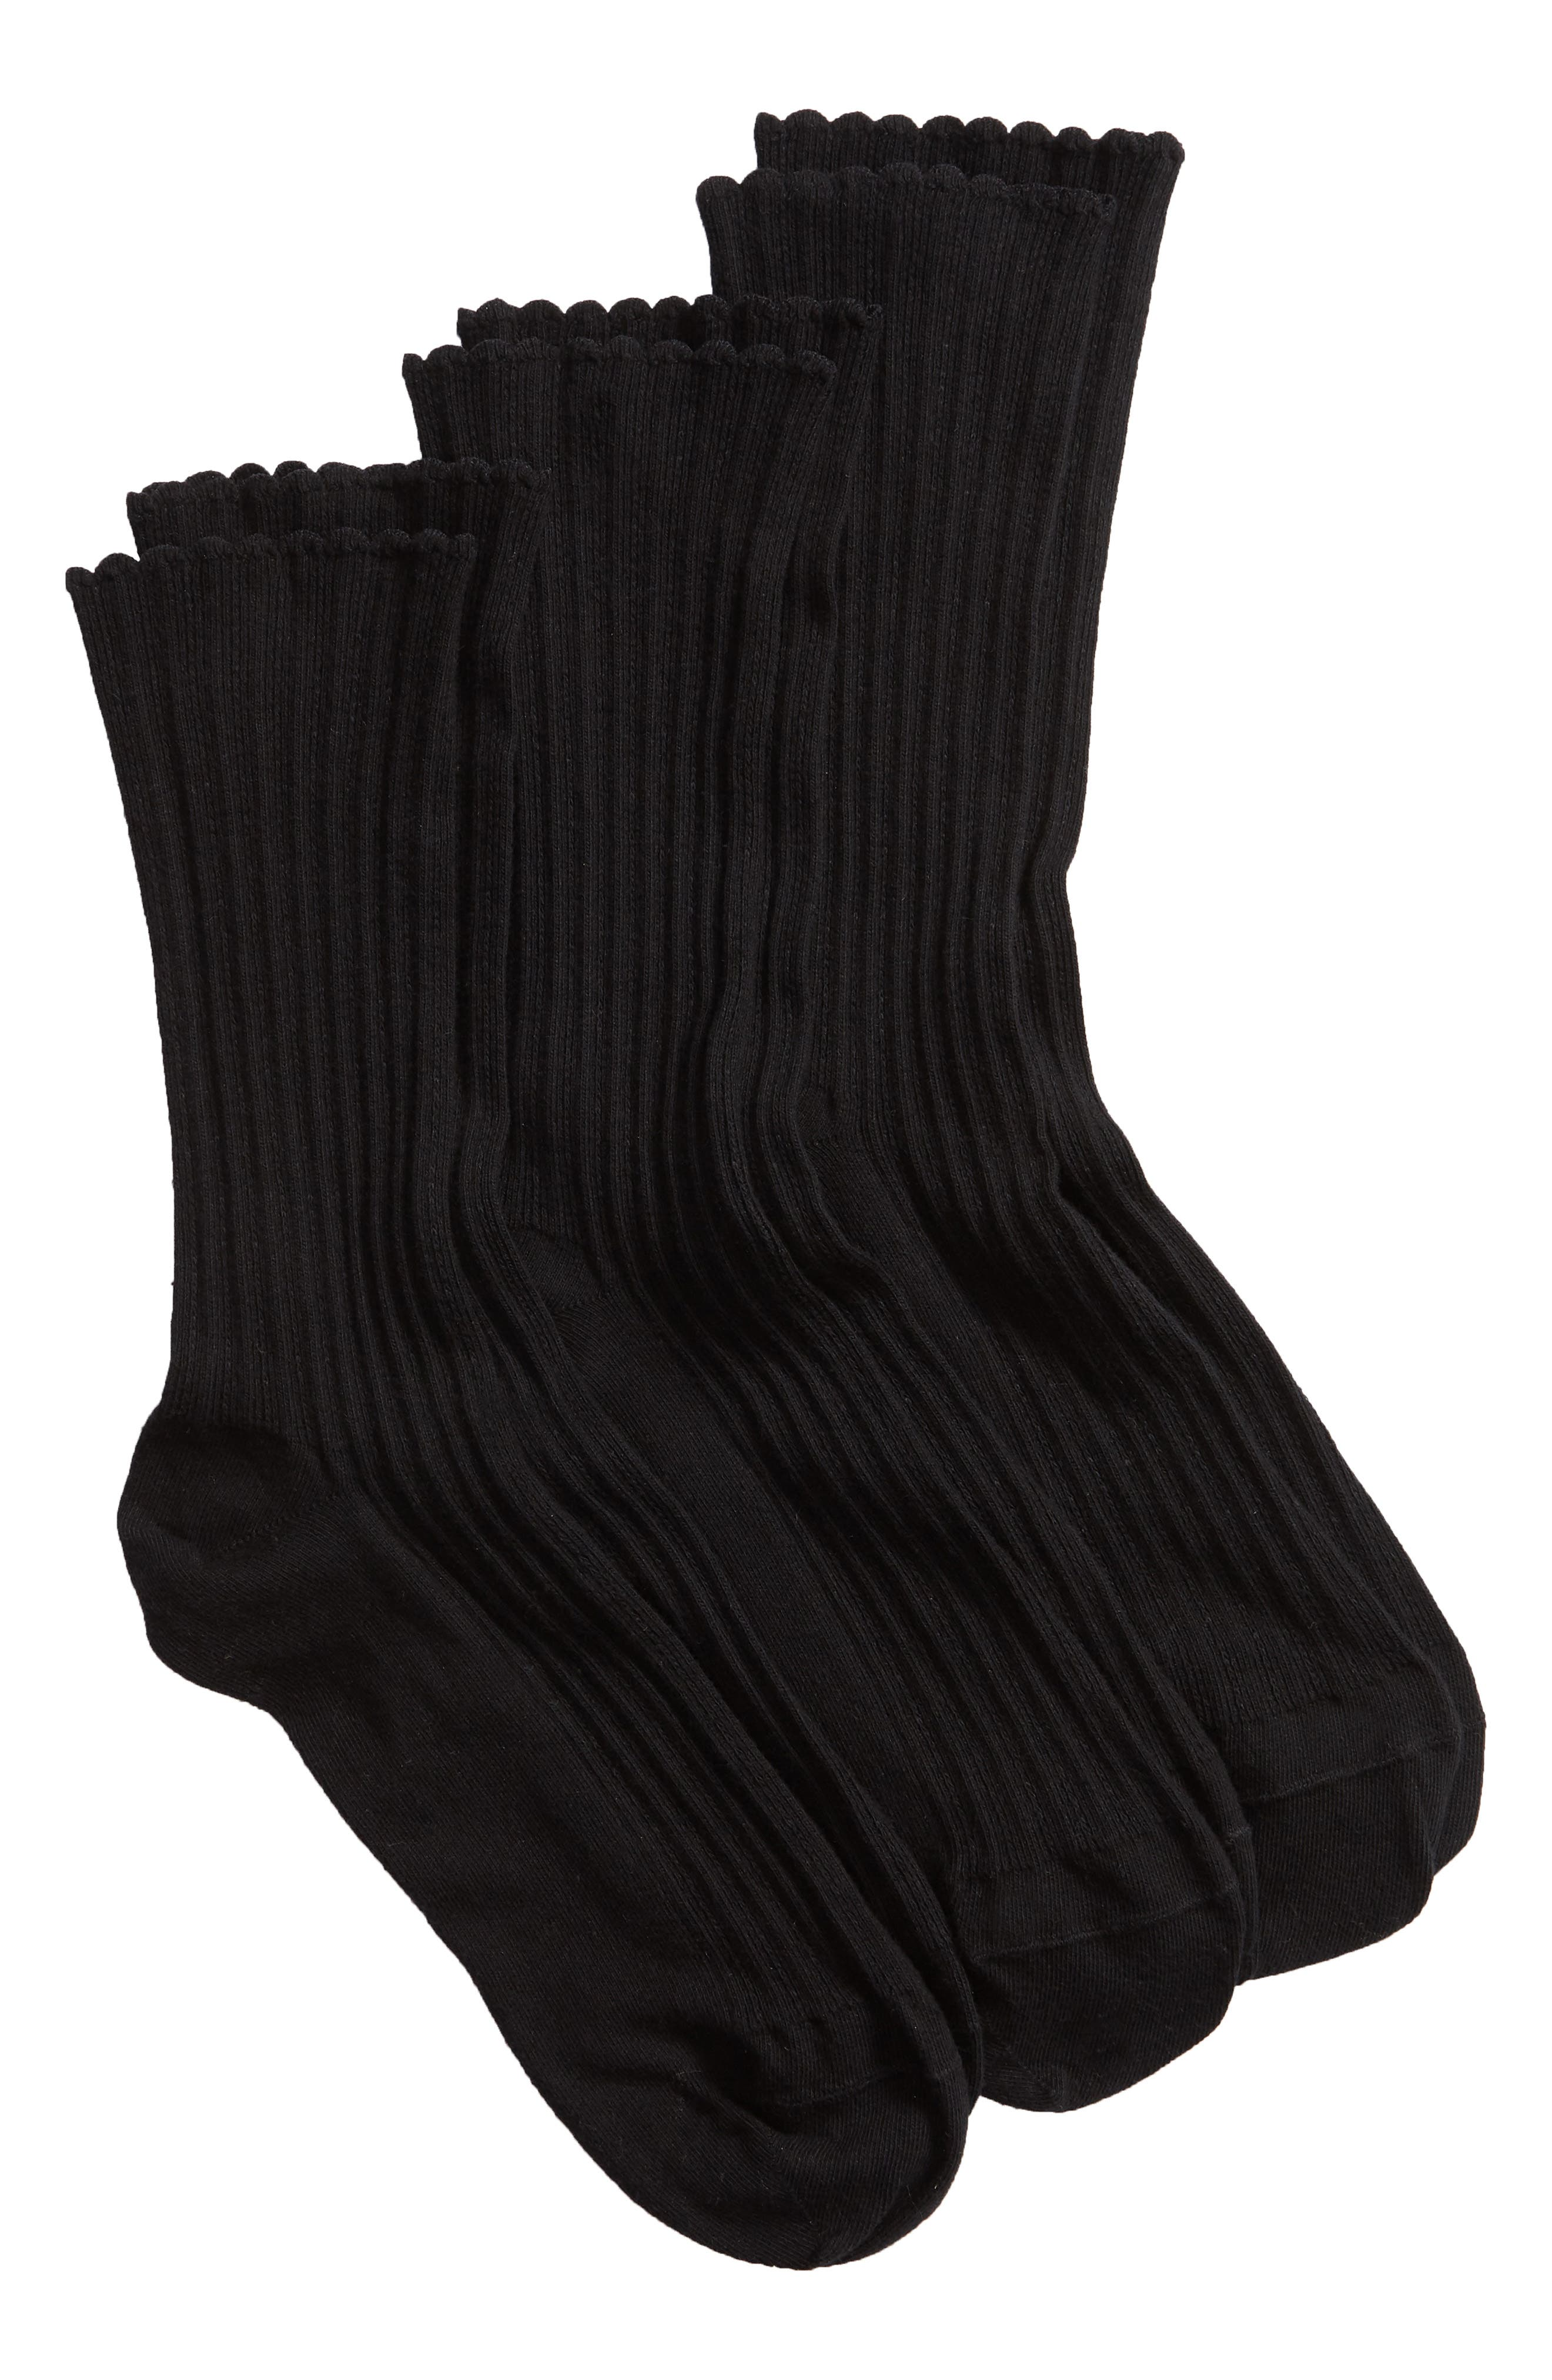 HUE 3-Pack Scalloped Rib Crew Socks, Main, color, BLACK